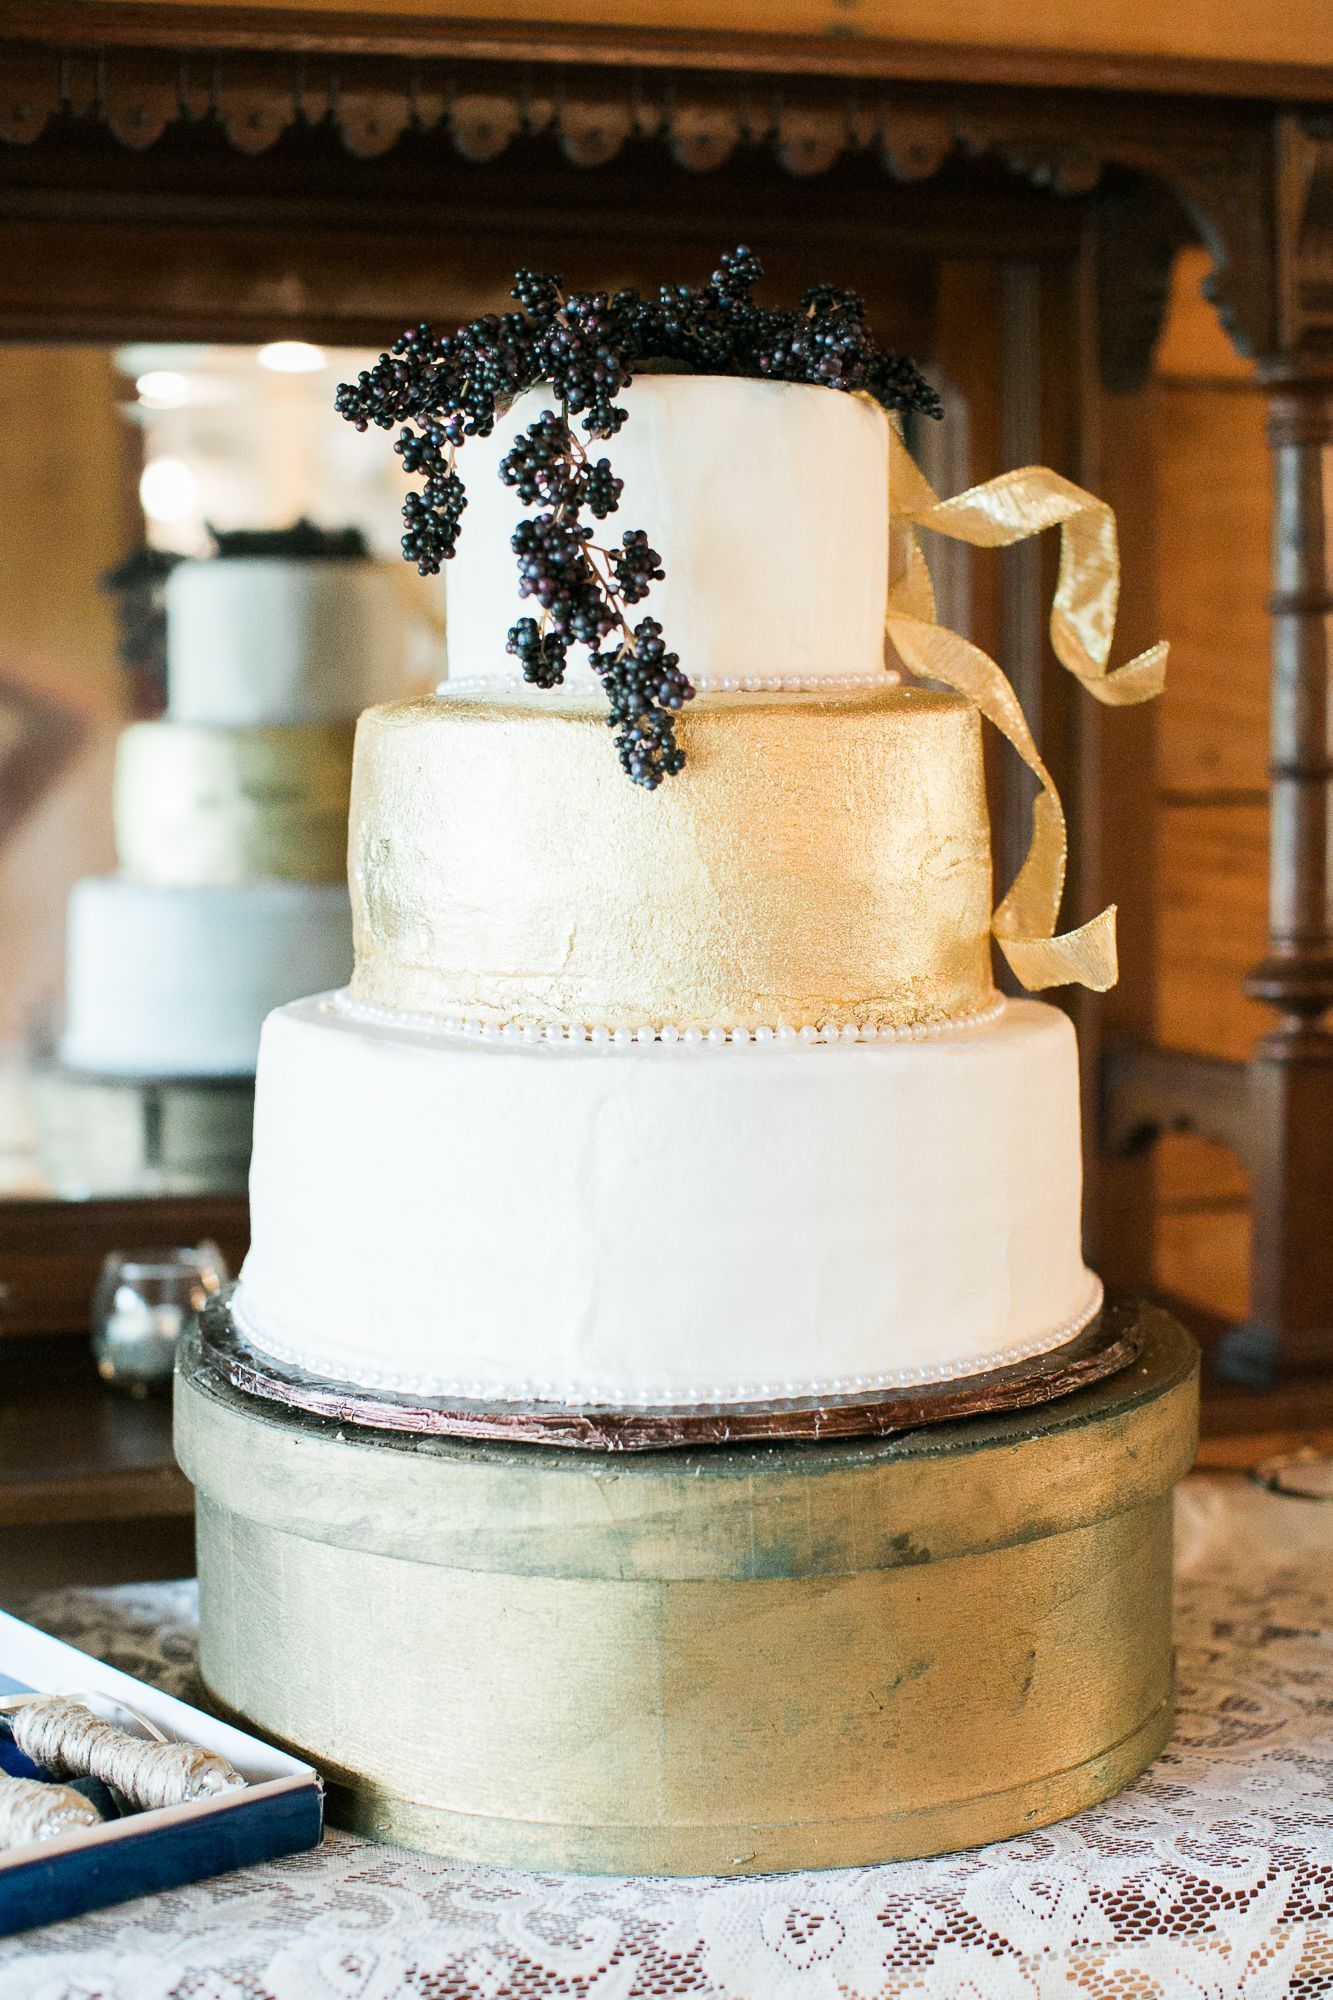 Wedding Cakes With Gold Accents  Gold Wedding Cake With Blue Berry Accents